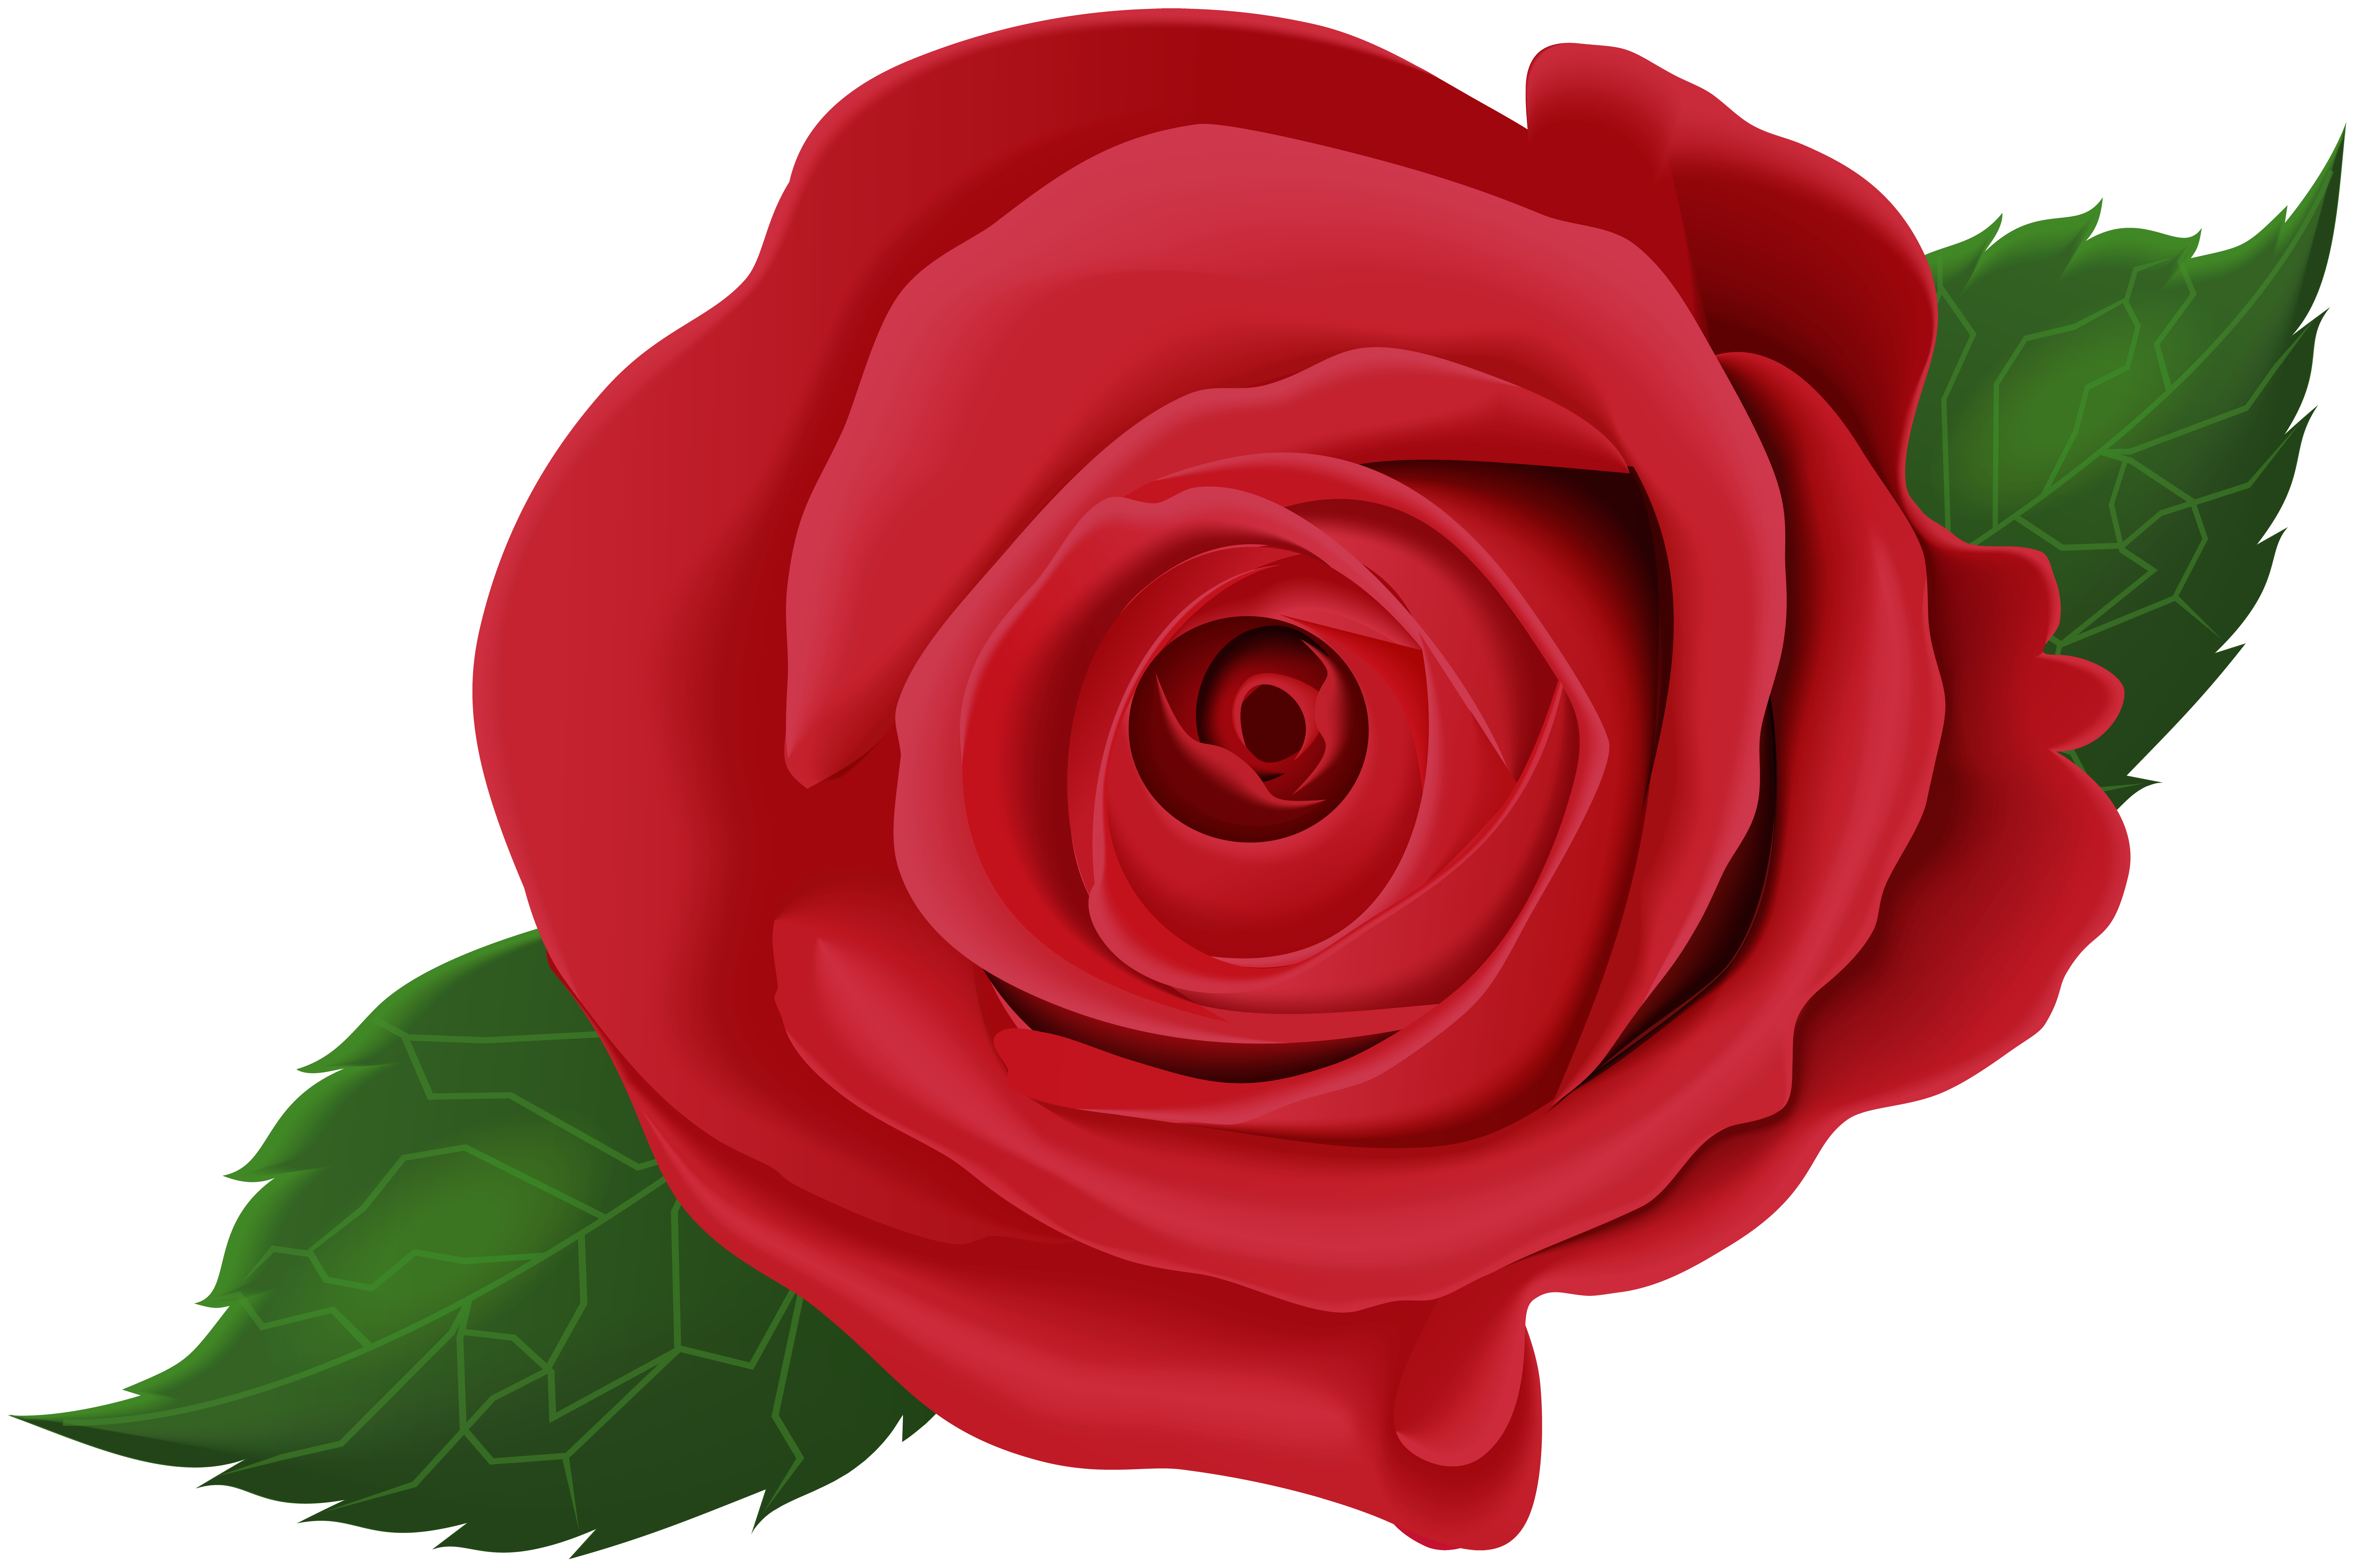 Red Rose with Leaves PNG Clip Art Image.